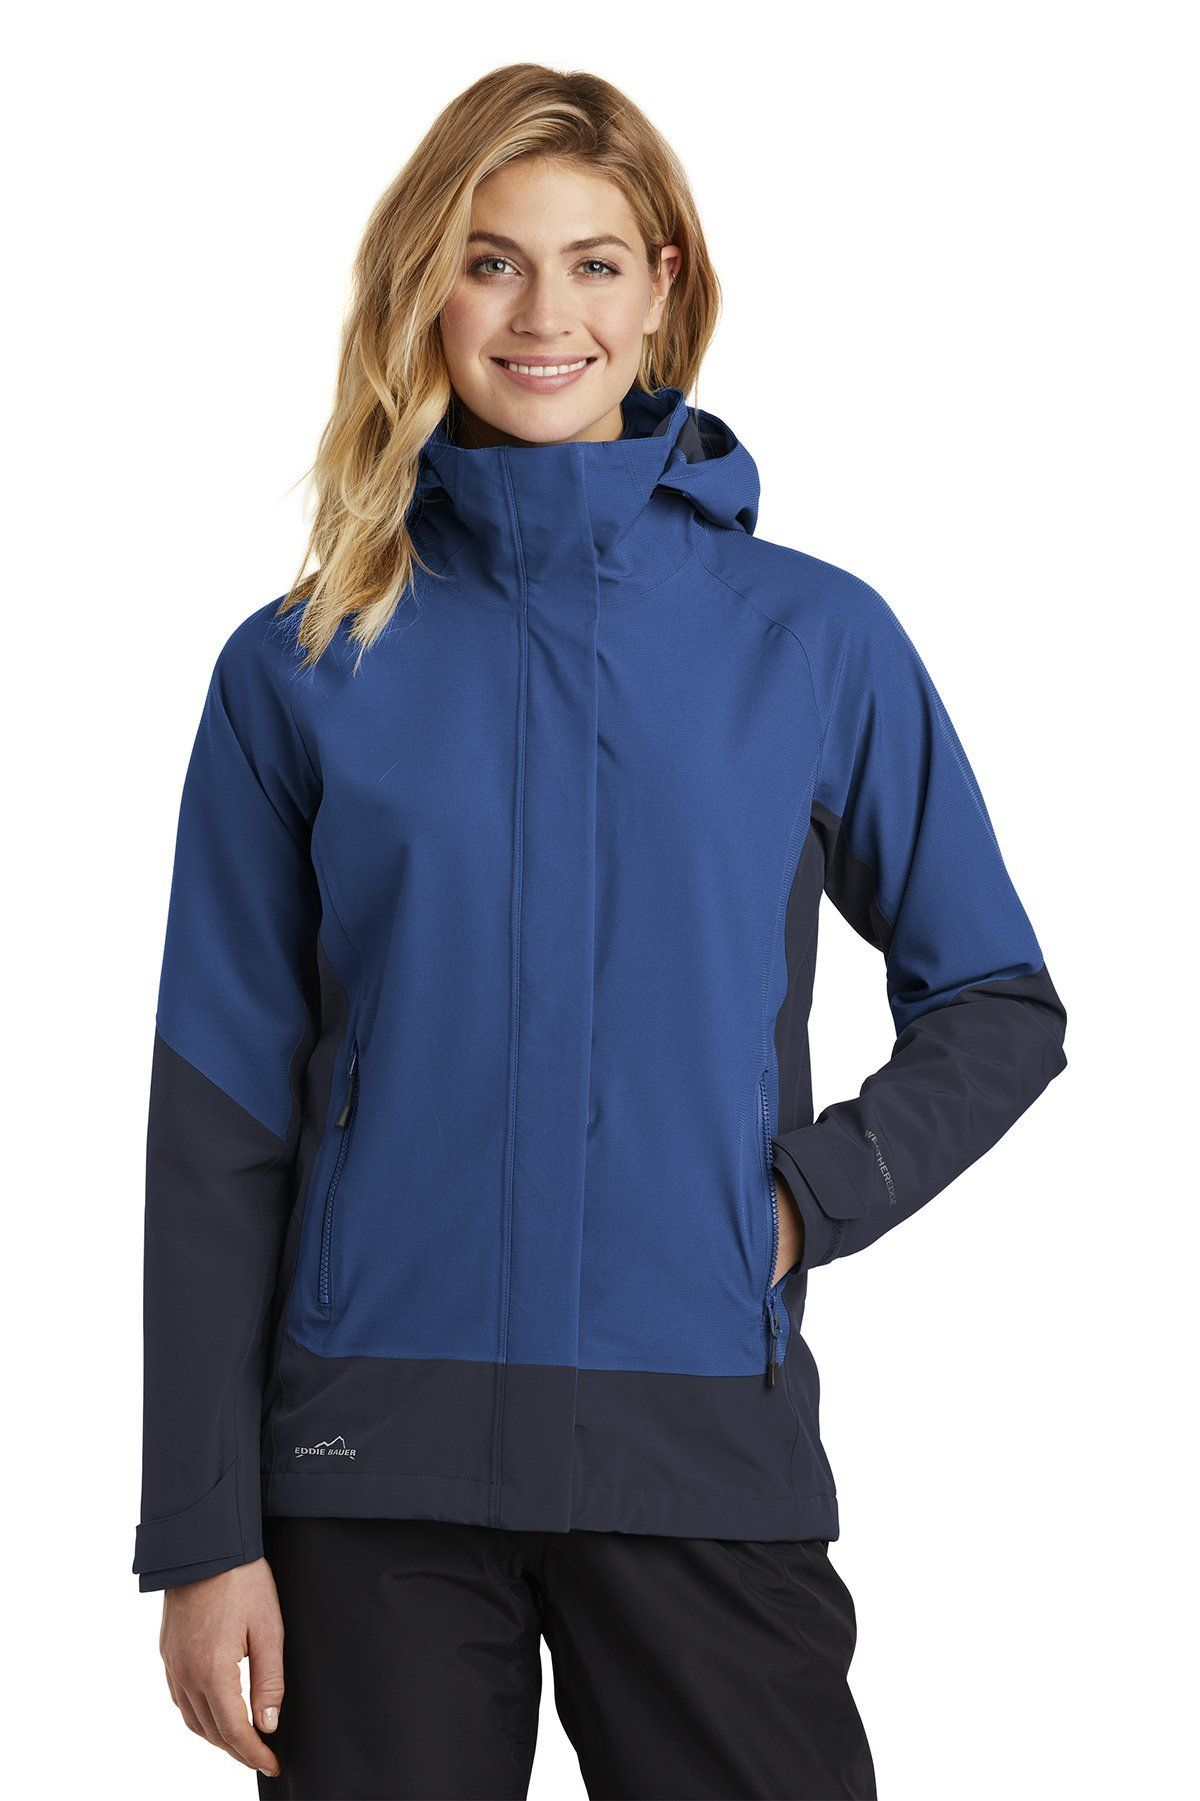 Eddie Bauer Ladies WeatherEdge Jacket EB559 Cobalt Blue